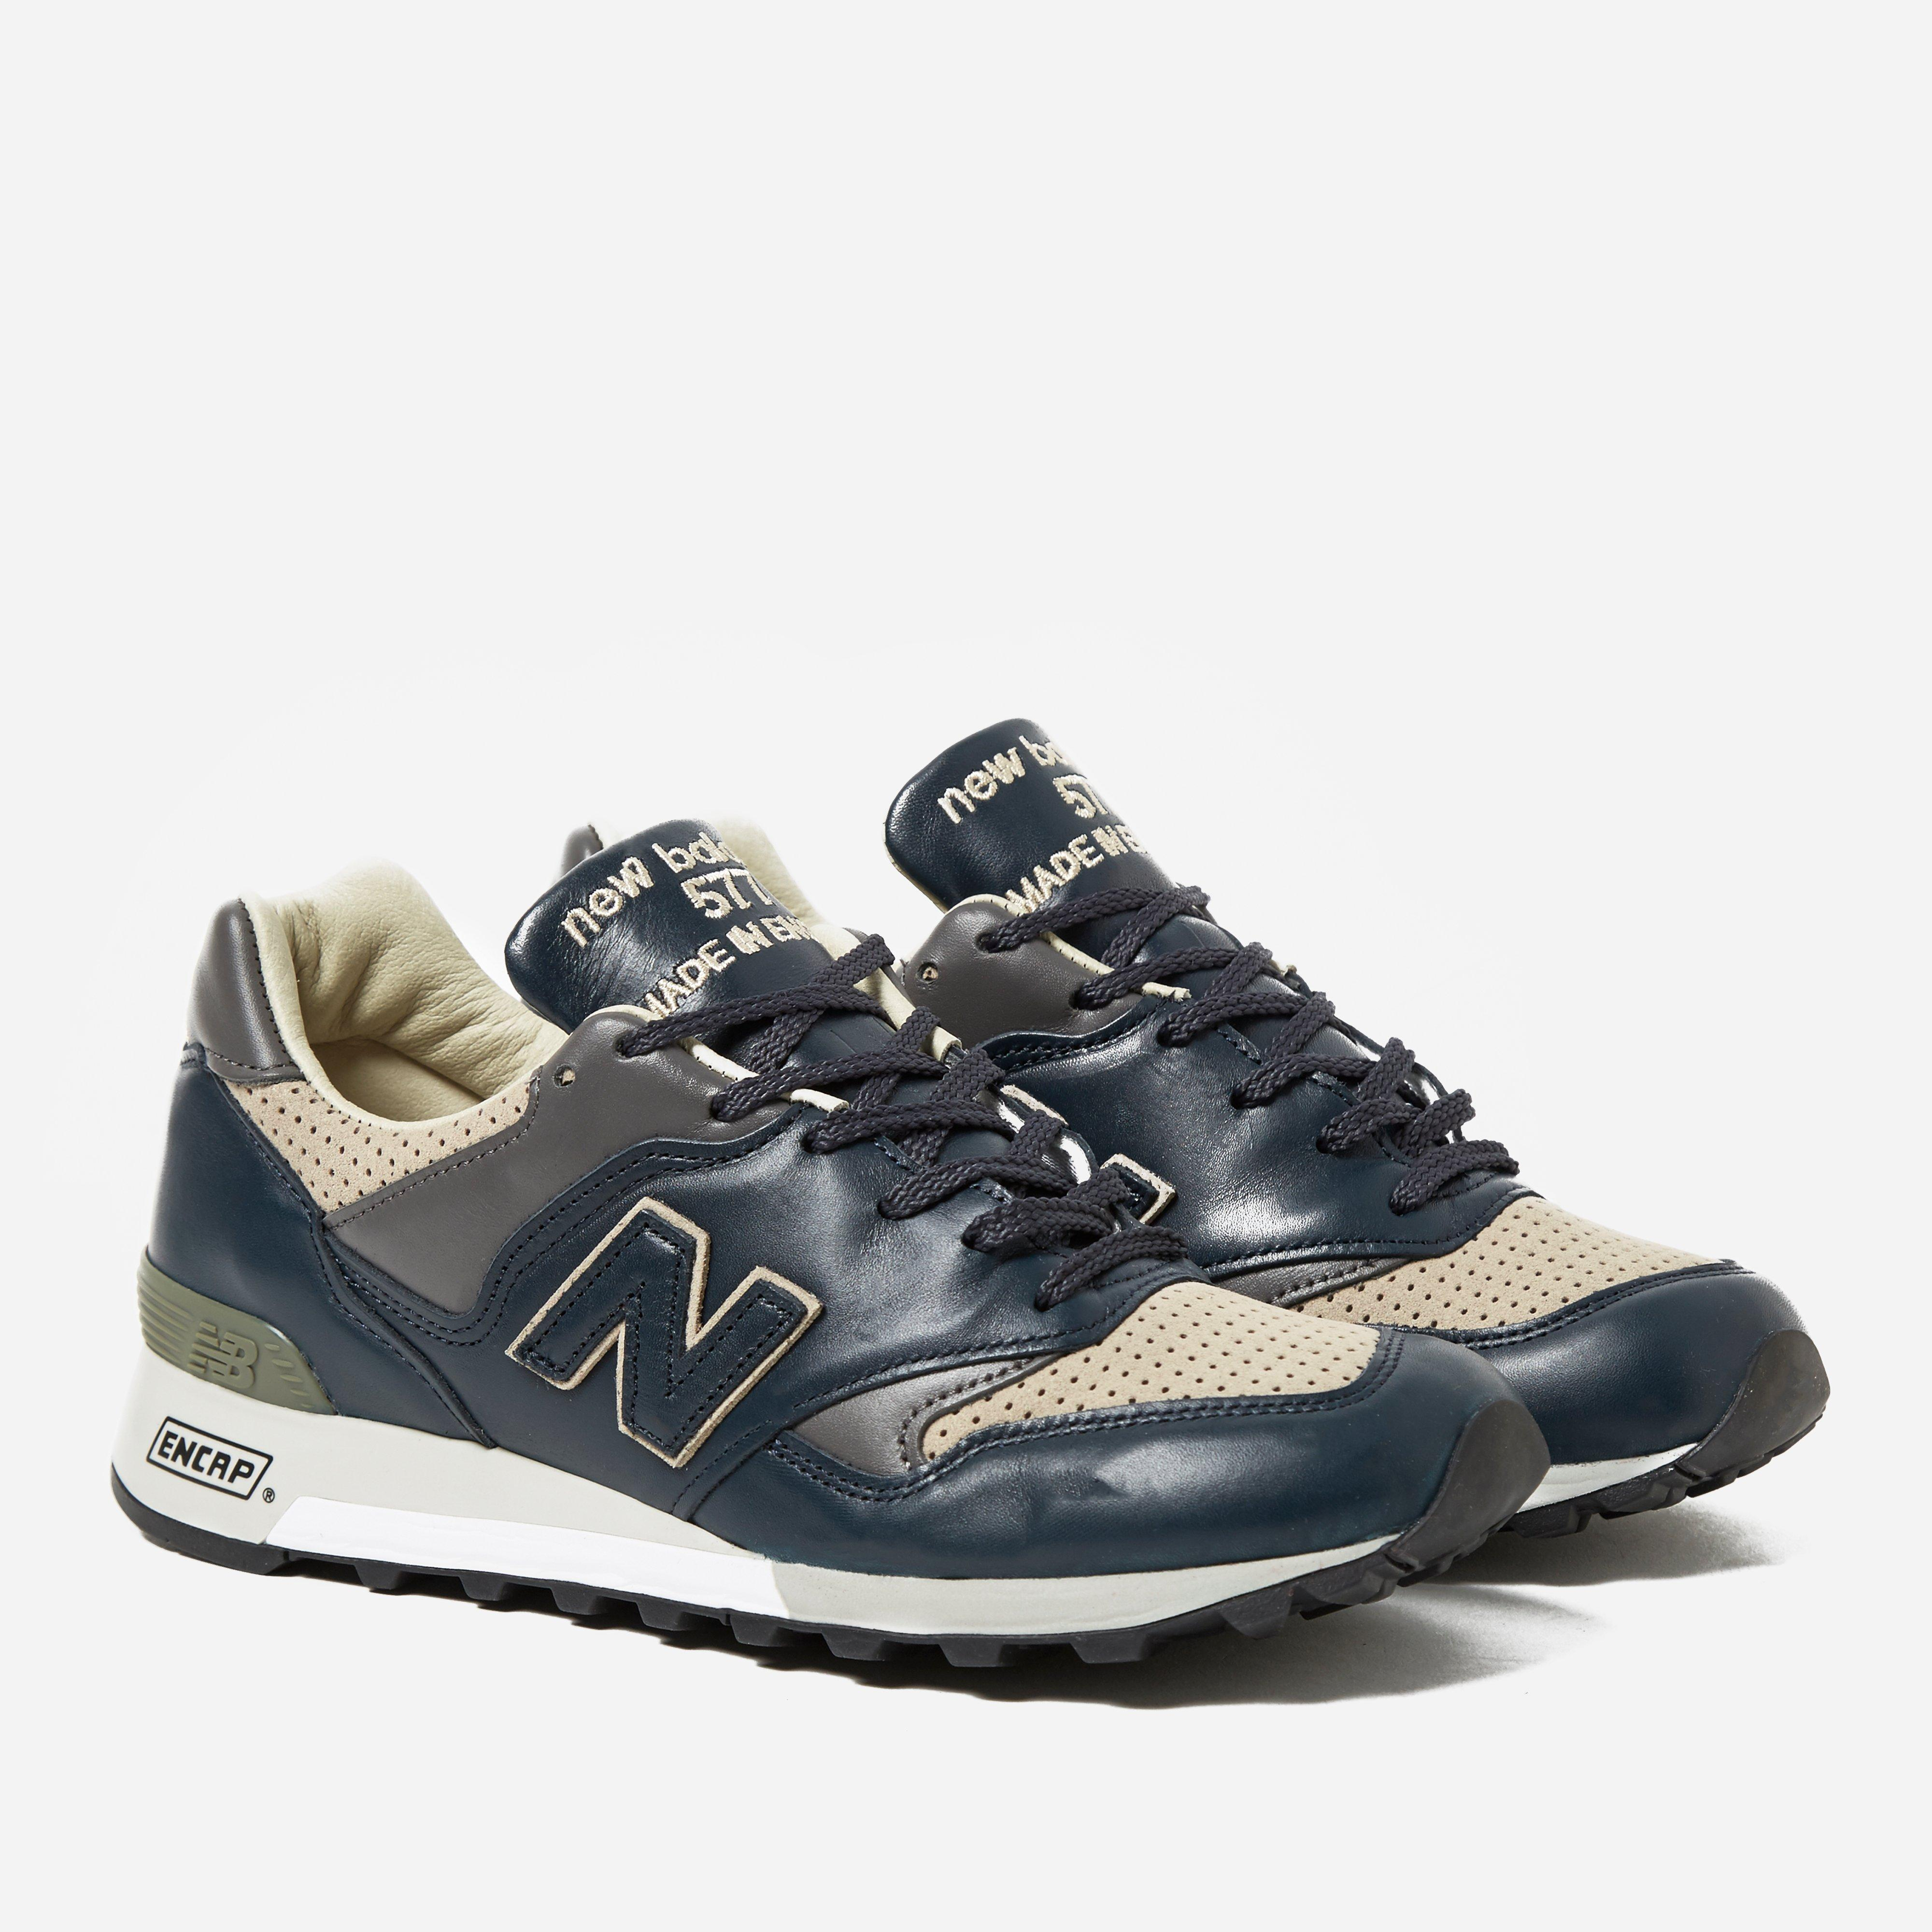 New Balance M577LNT Made In England